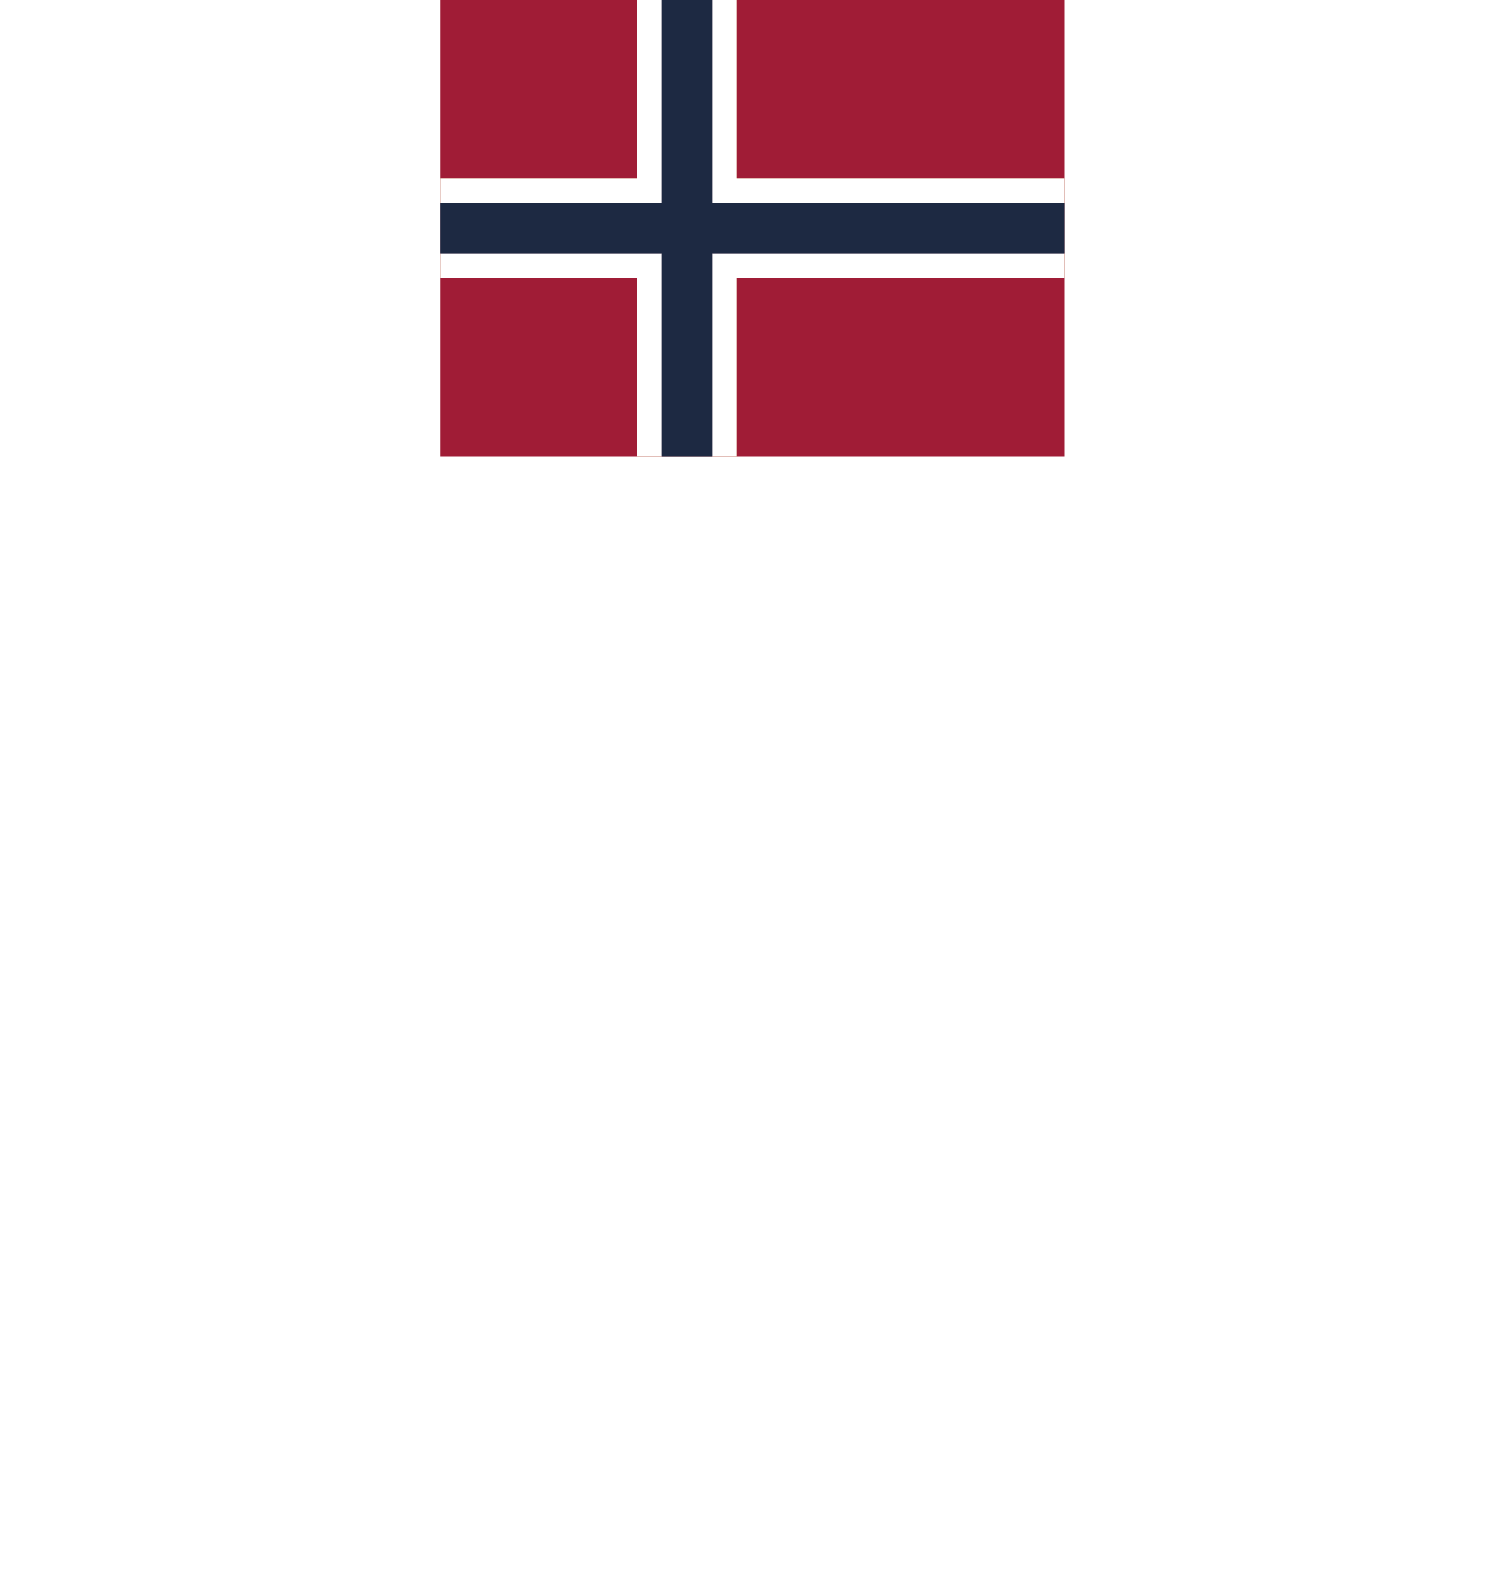 Norse Beer